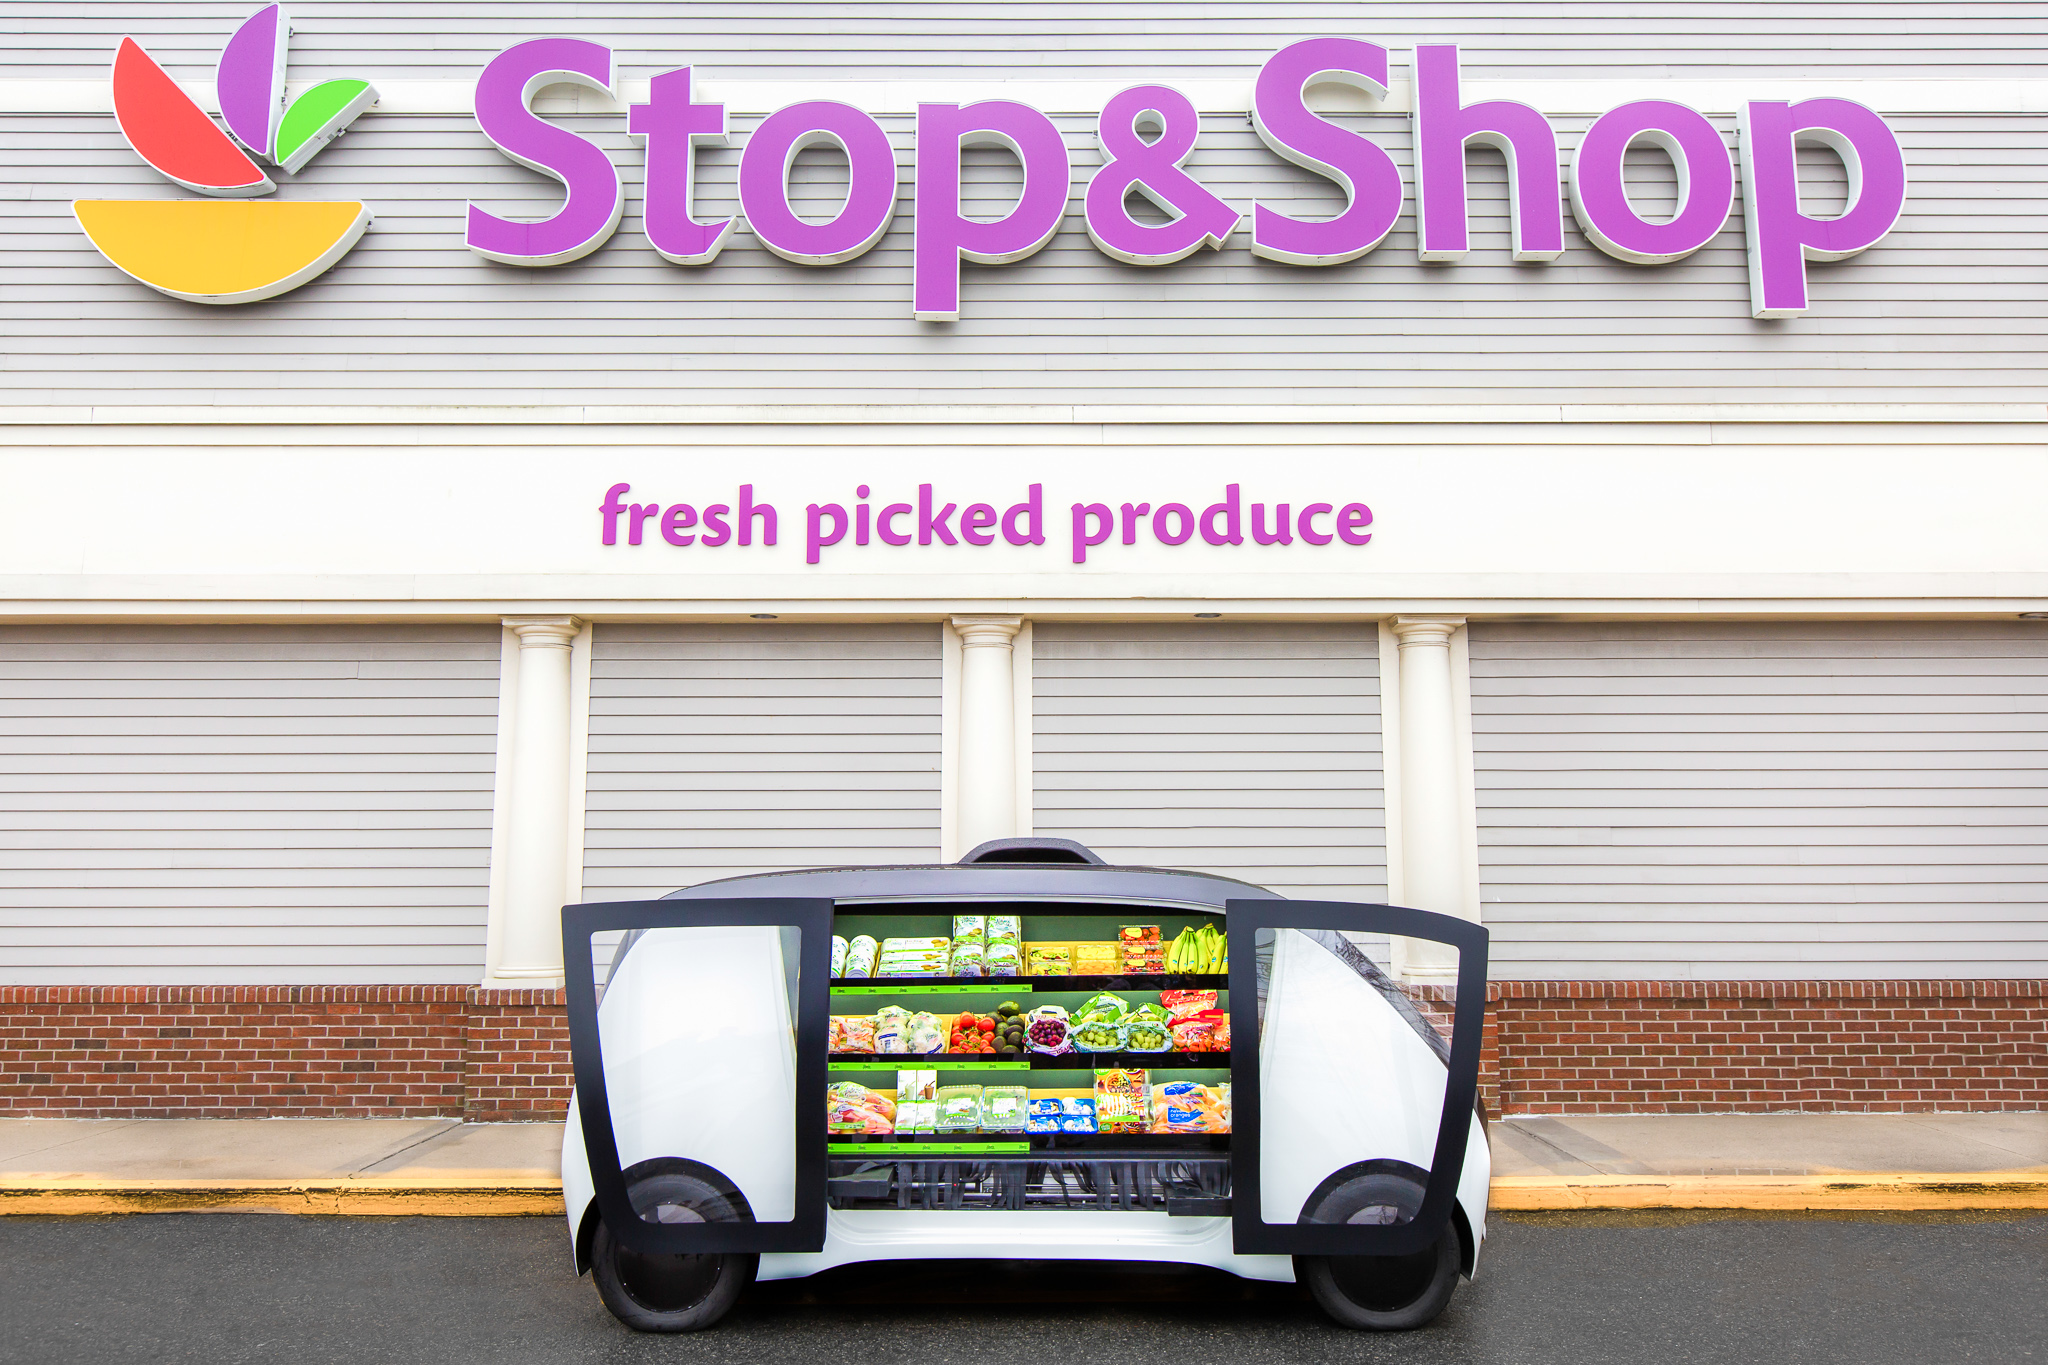 Union leader predicts strike at Stop & Shop